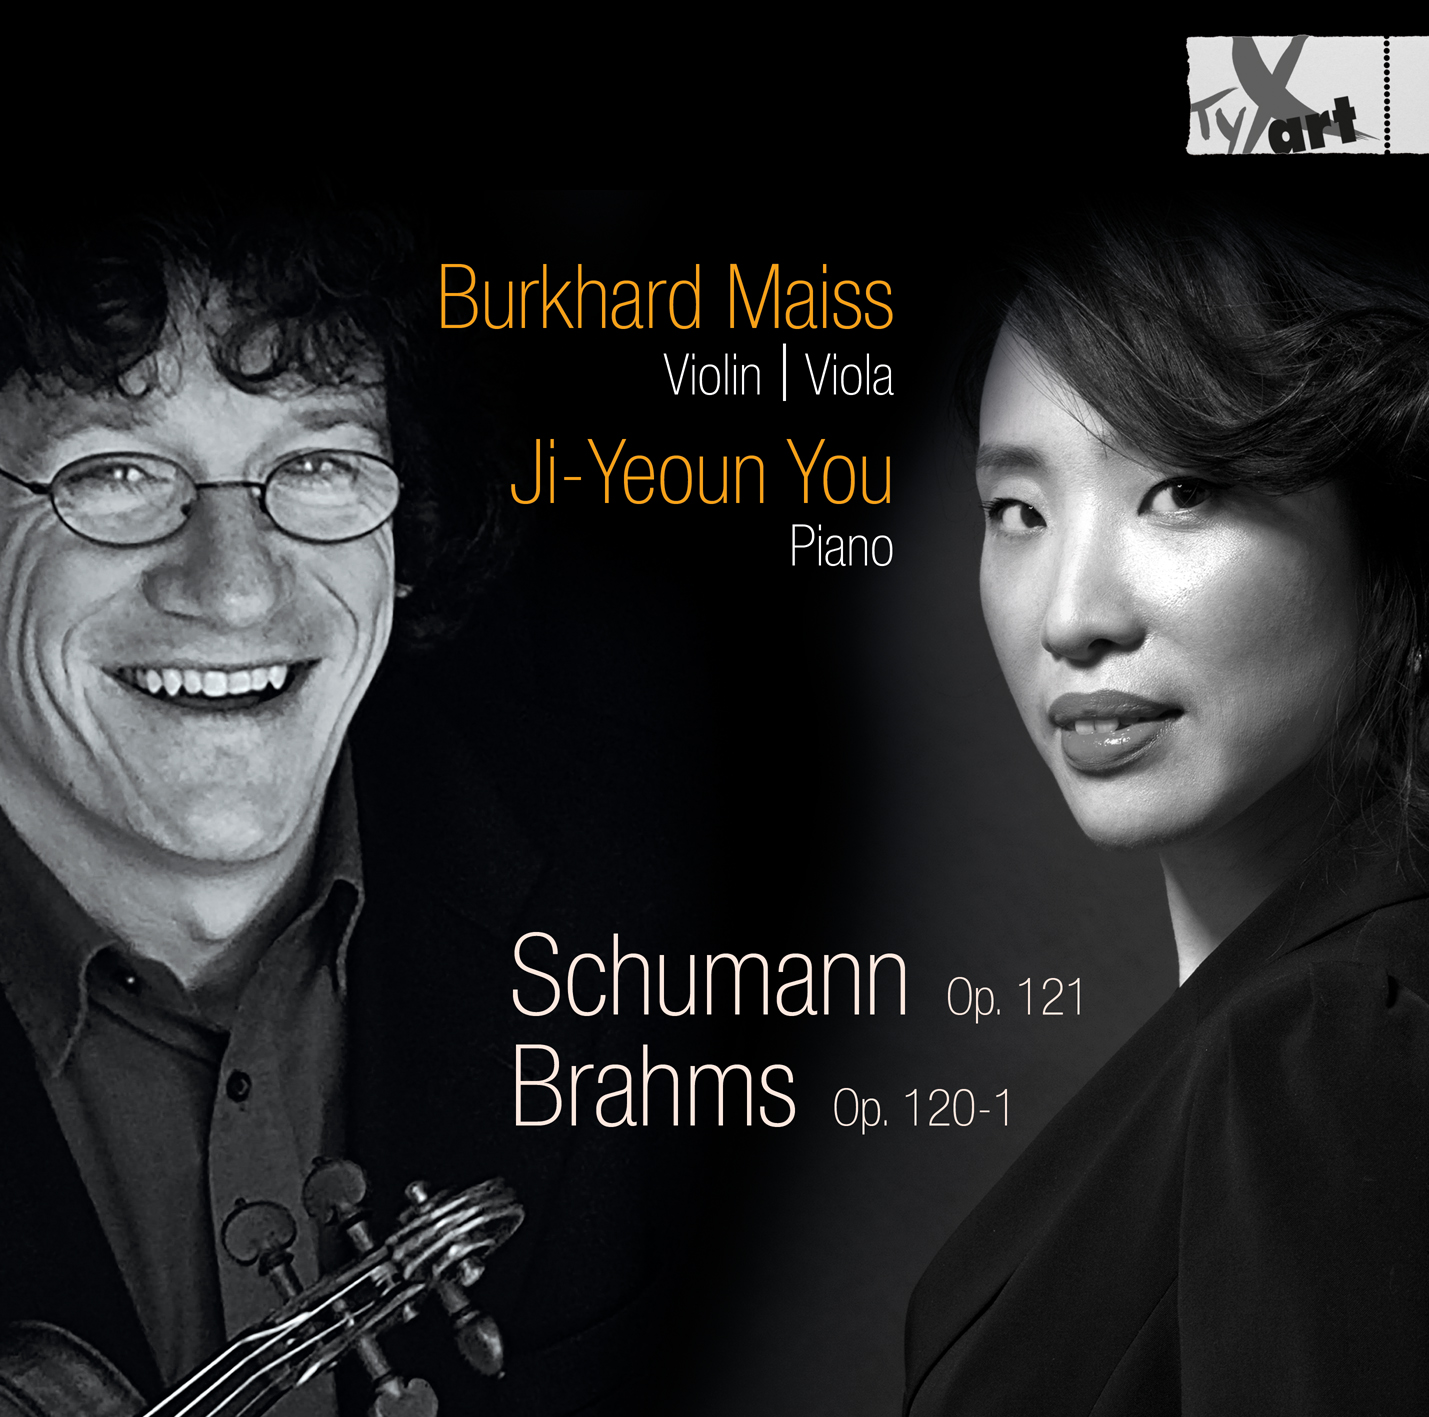 Duo Maiss You - Schumann & Brahms